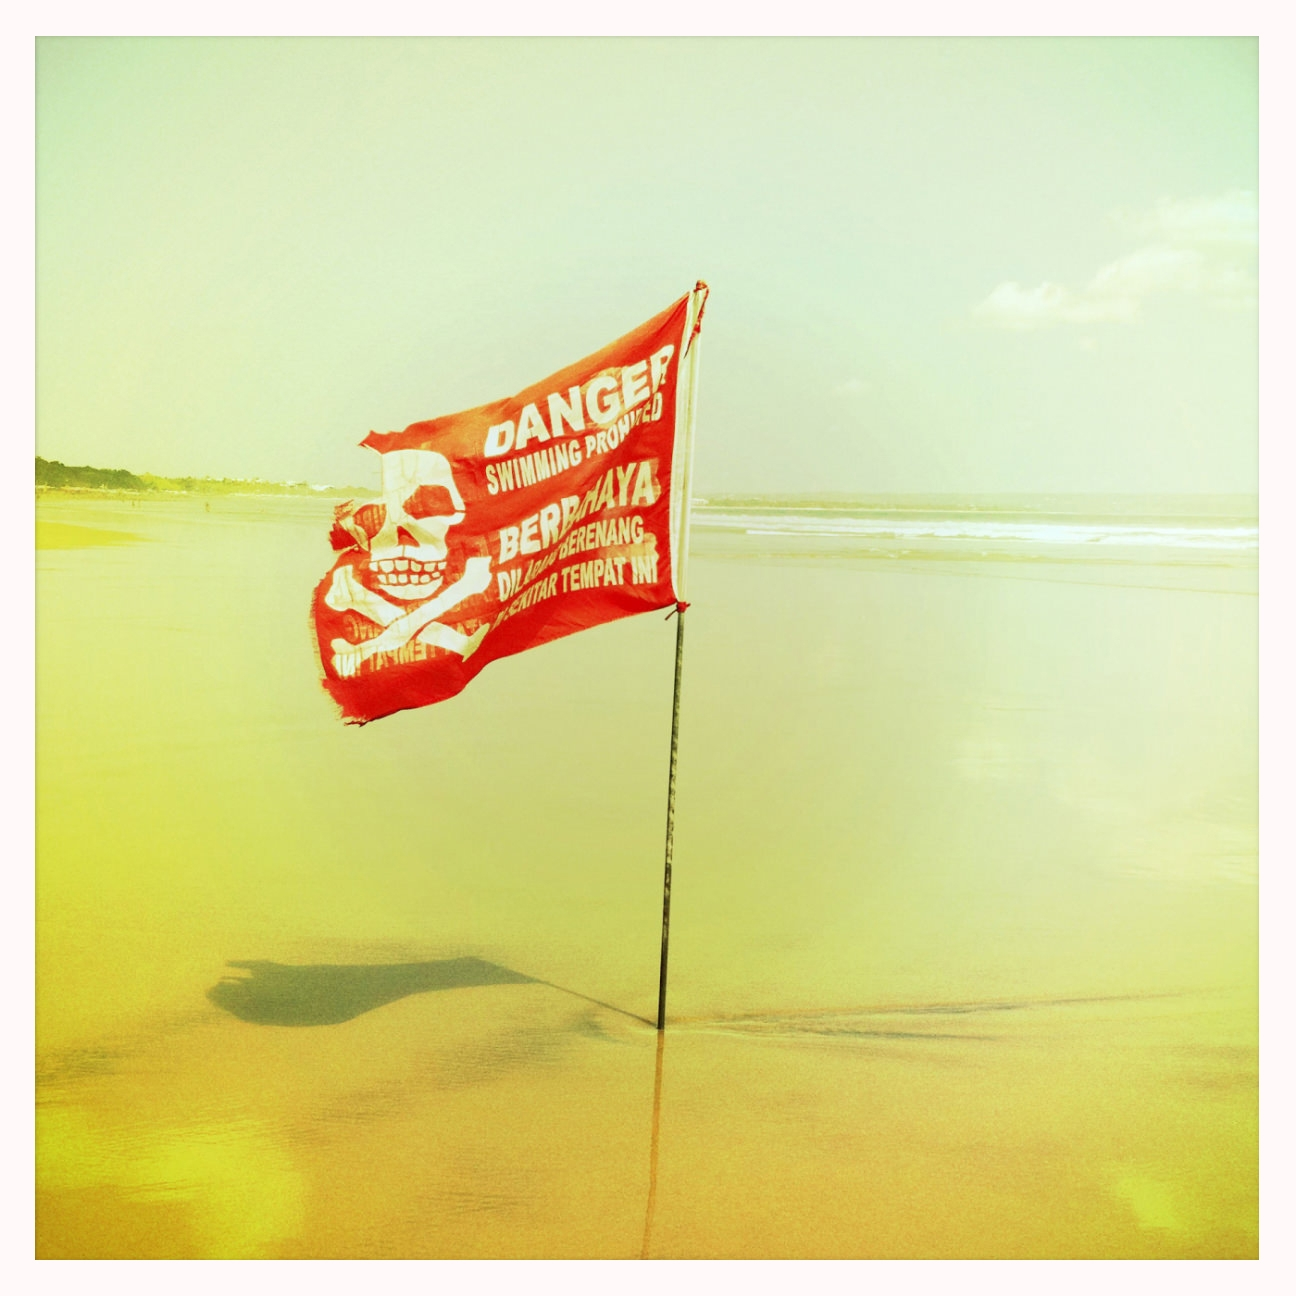 Danger - Photography, Flag, Beach - marcomariosimonetti | ello